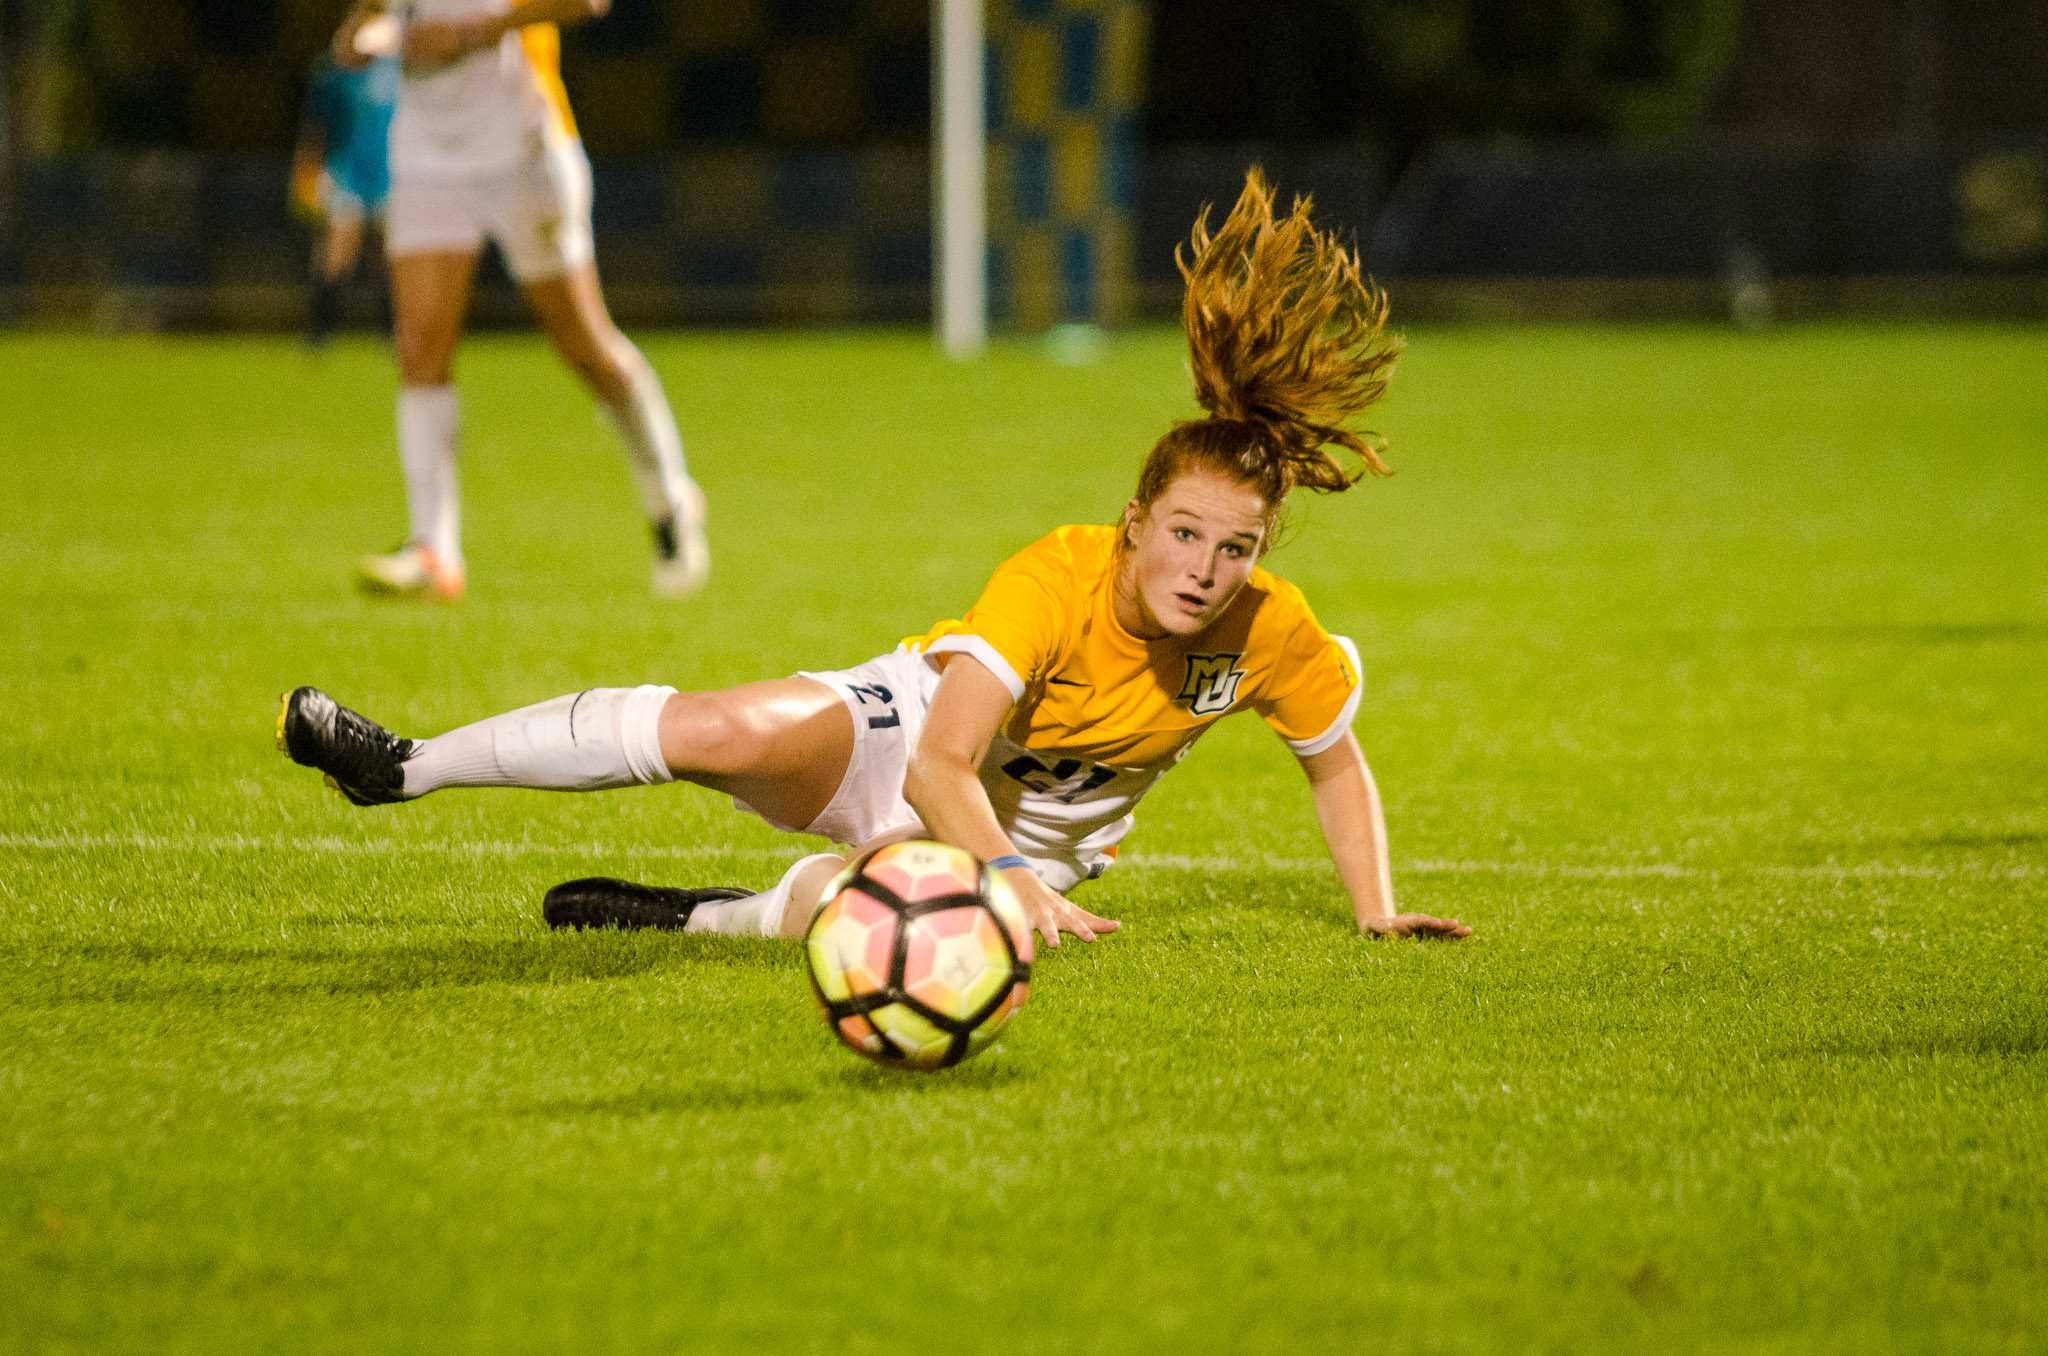 Carrie Madden scored one of Marquette's two goals Sunday afternoon.